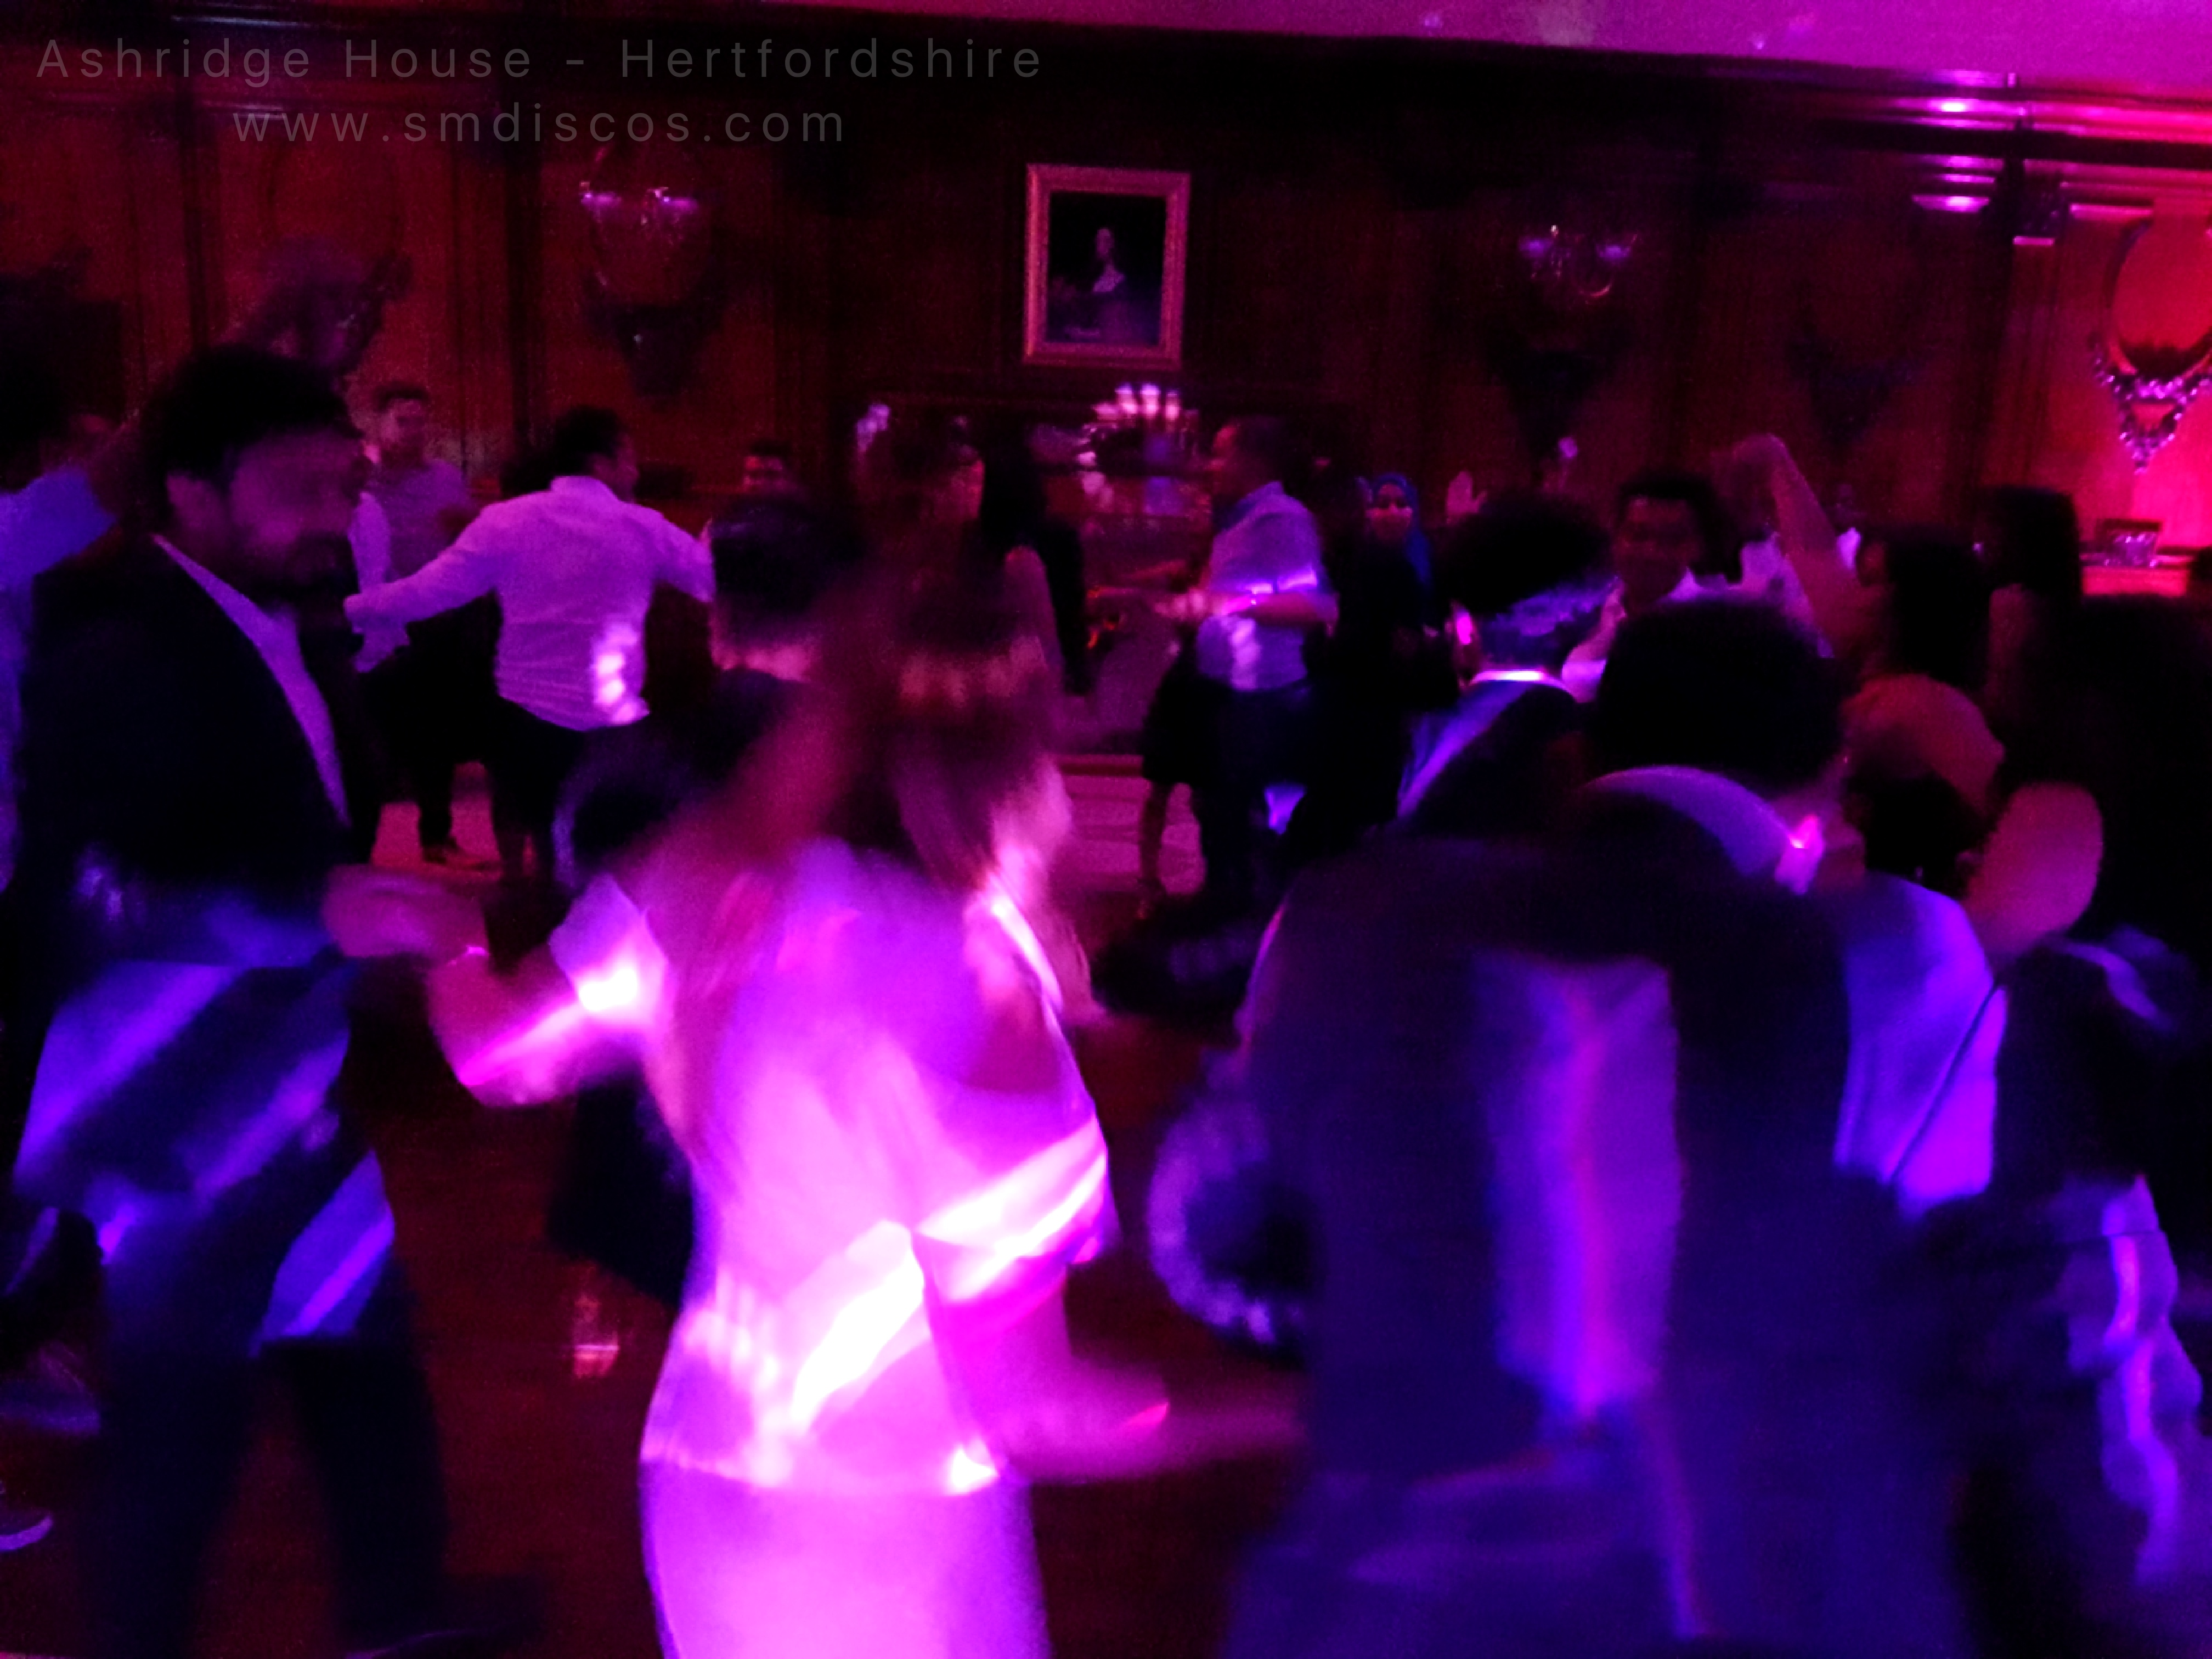 Hertfordshire dj ashridge house